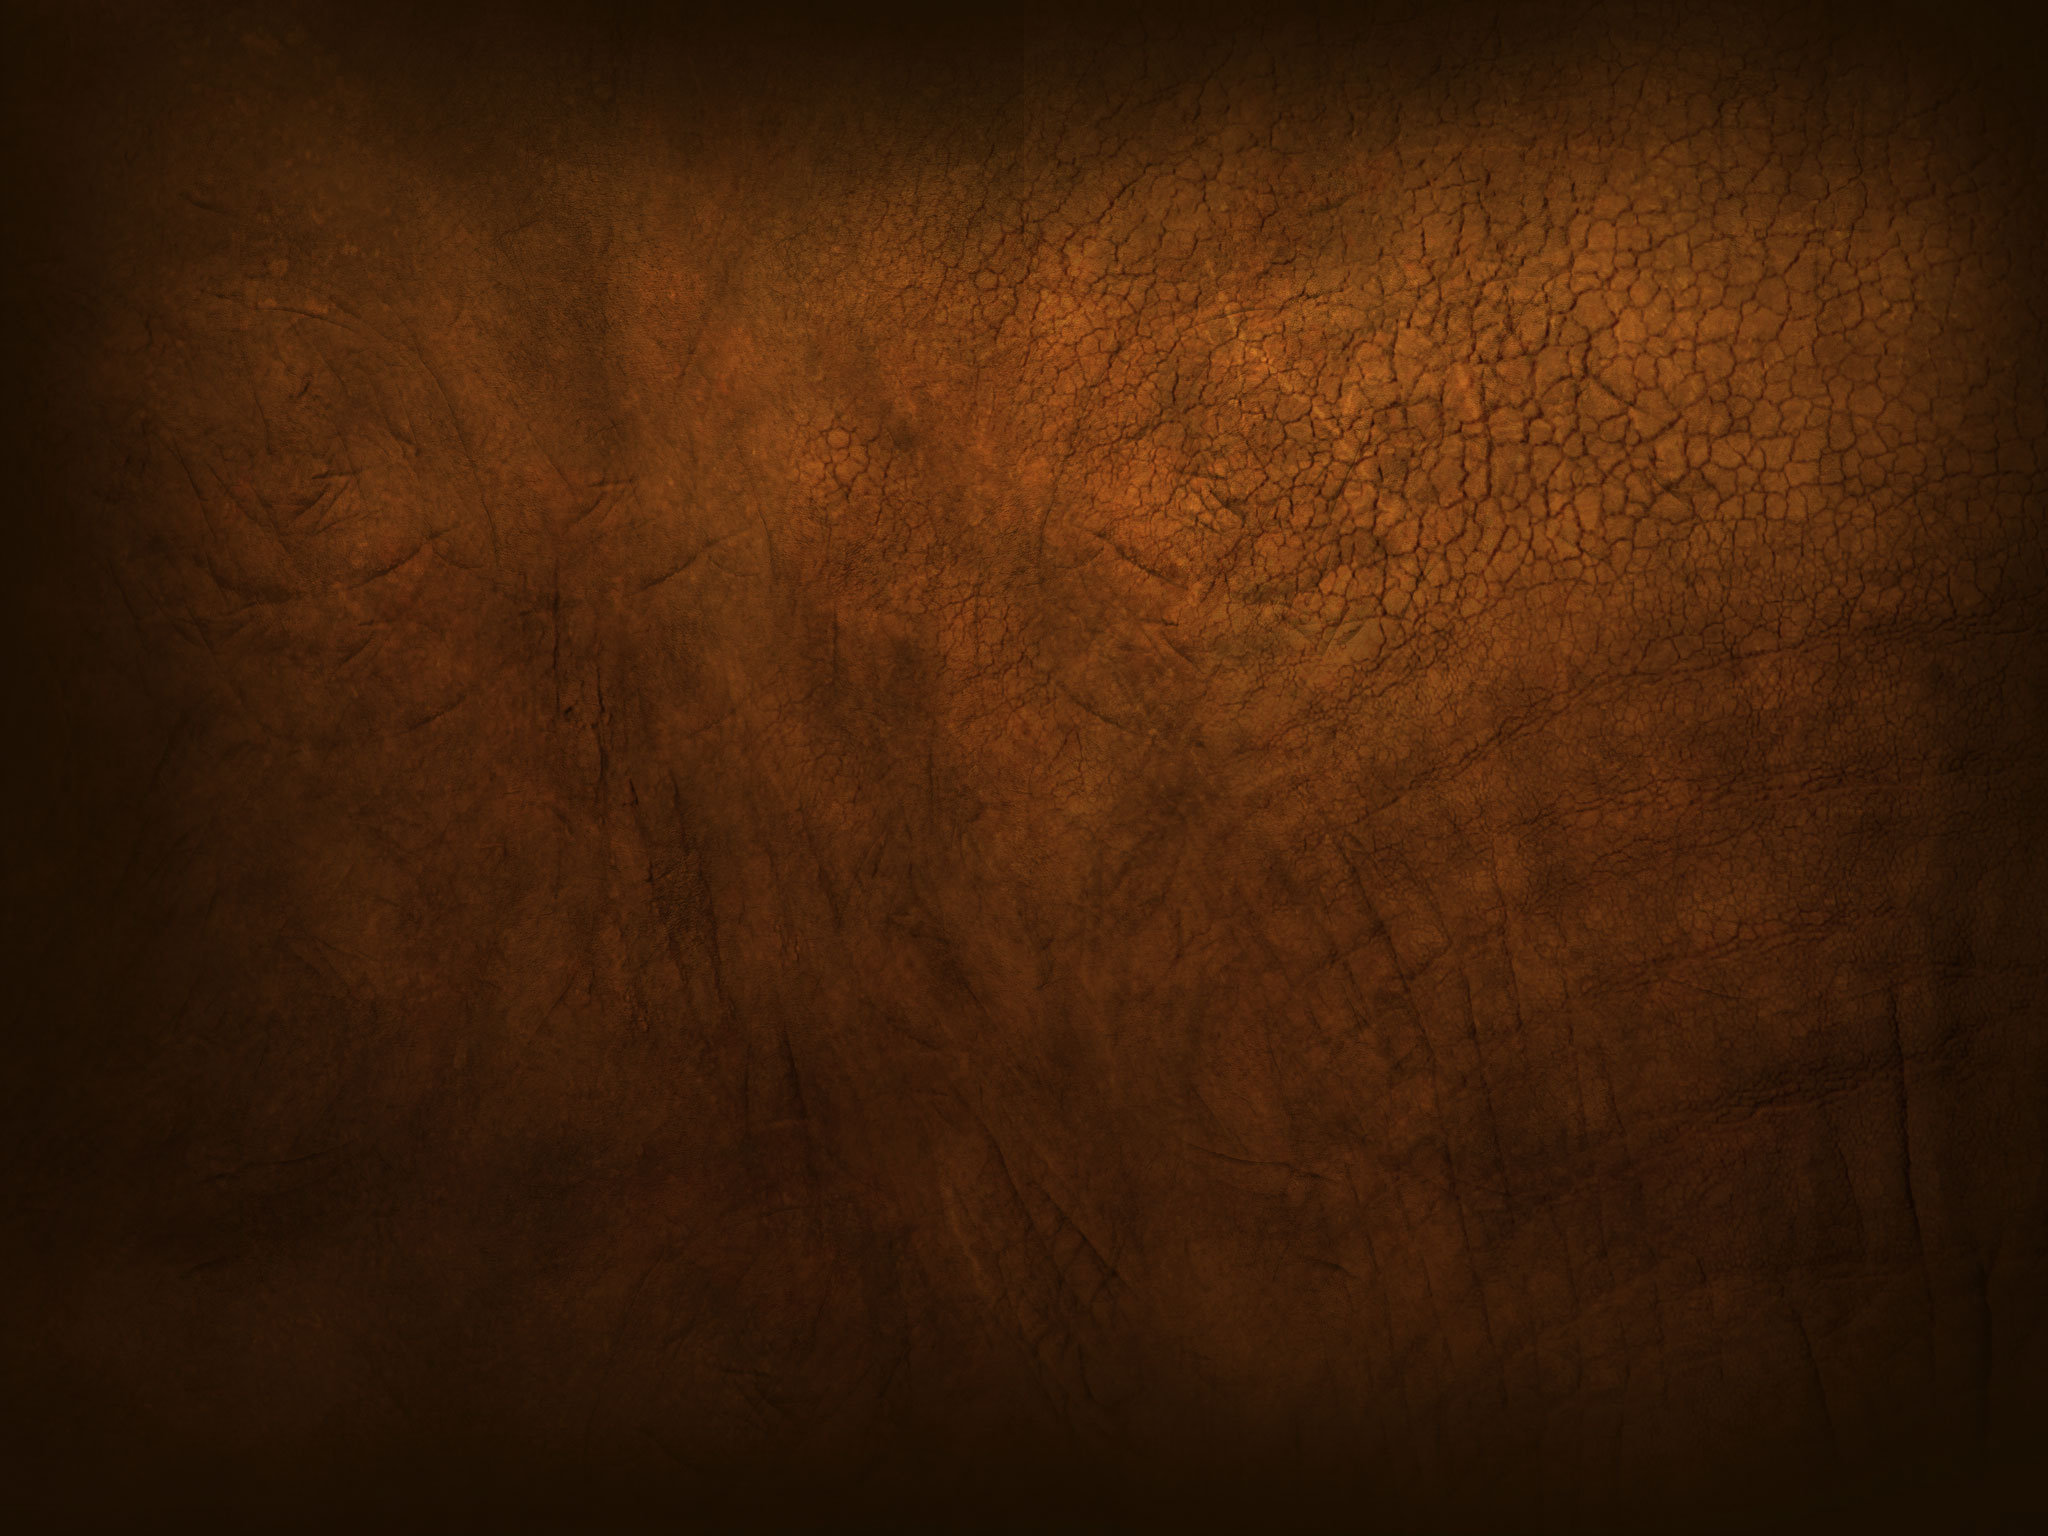 Texture Full HD Wallpaper And Background Image